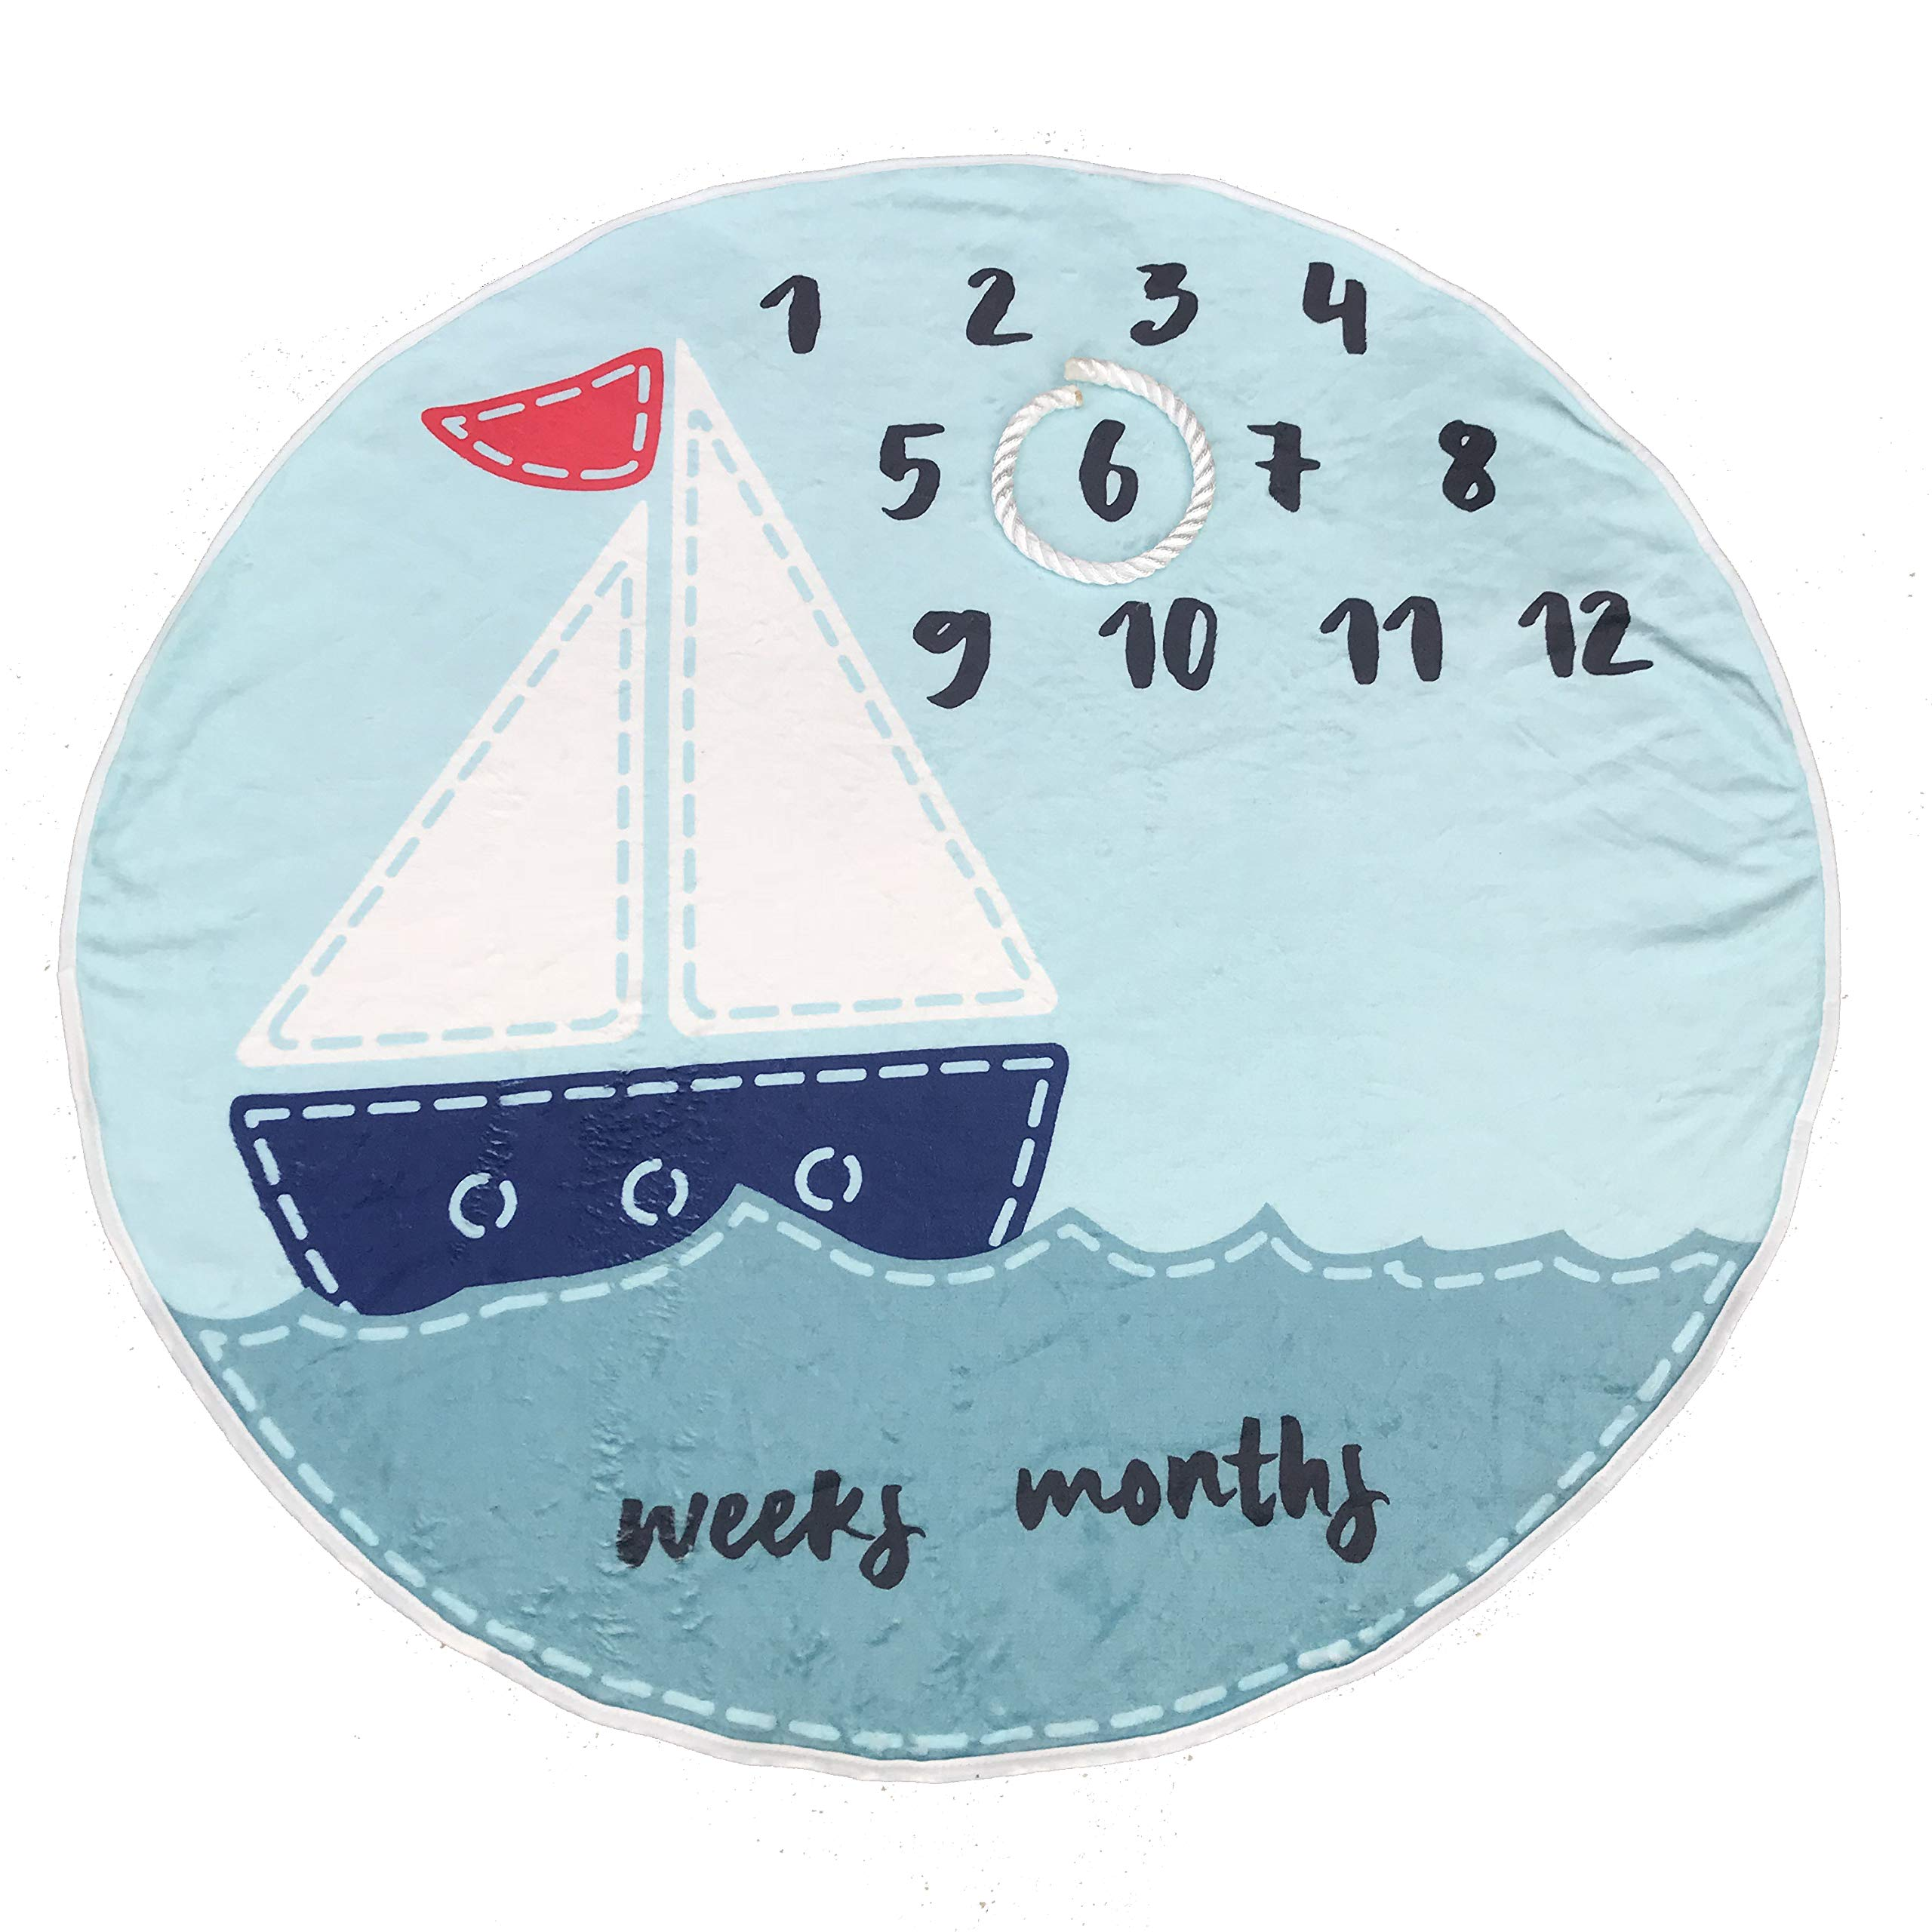 Premium Fleece Monthly Baby Milestone Blanket Round Blue Sailboat for Newborn to One Year 37'' with Anchor Rope for Frame